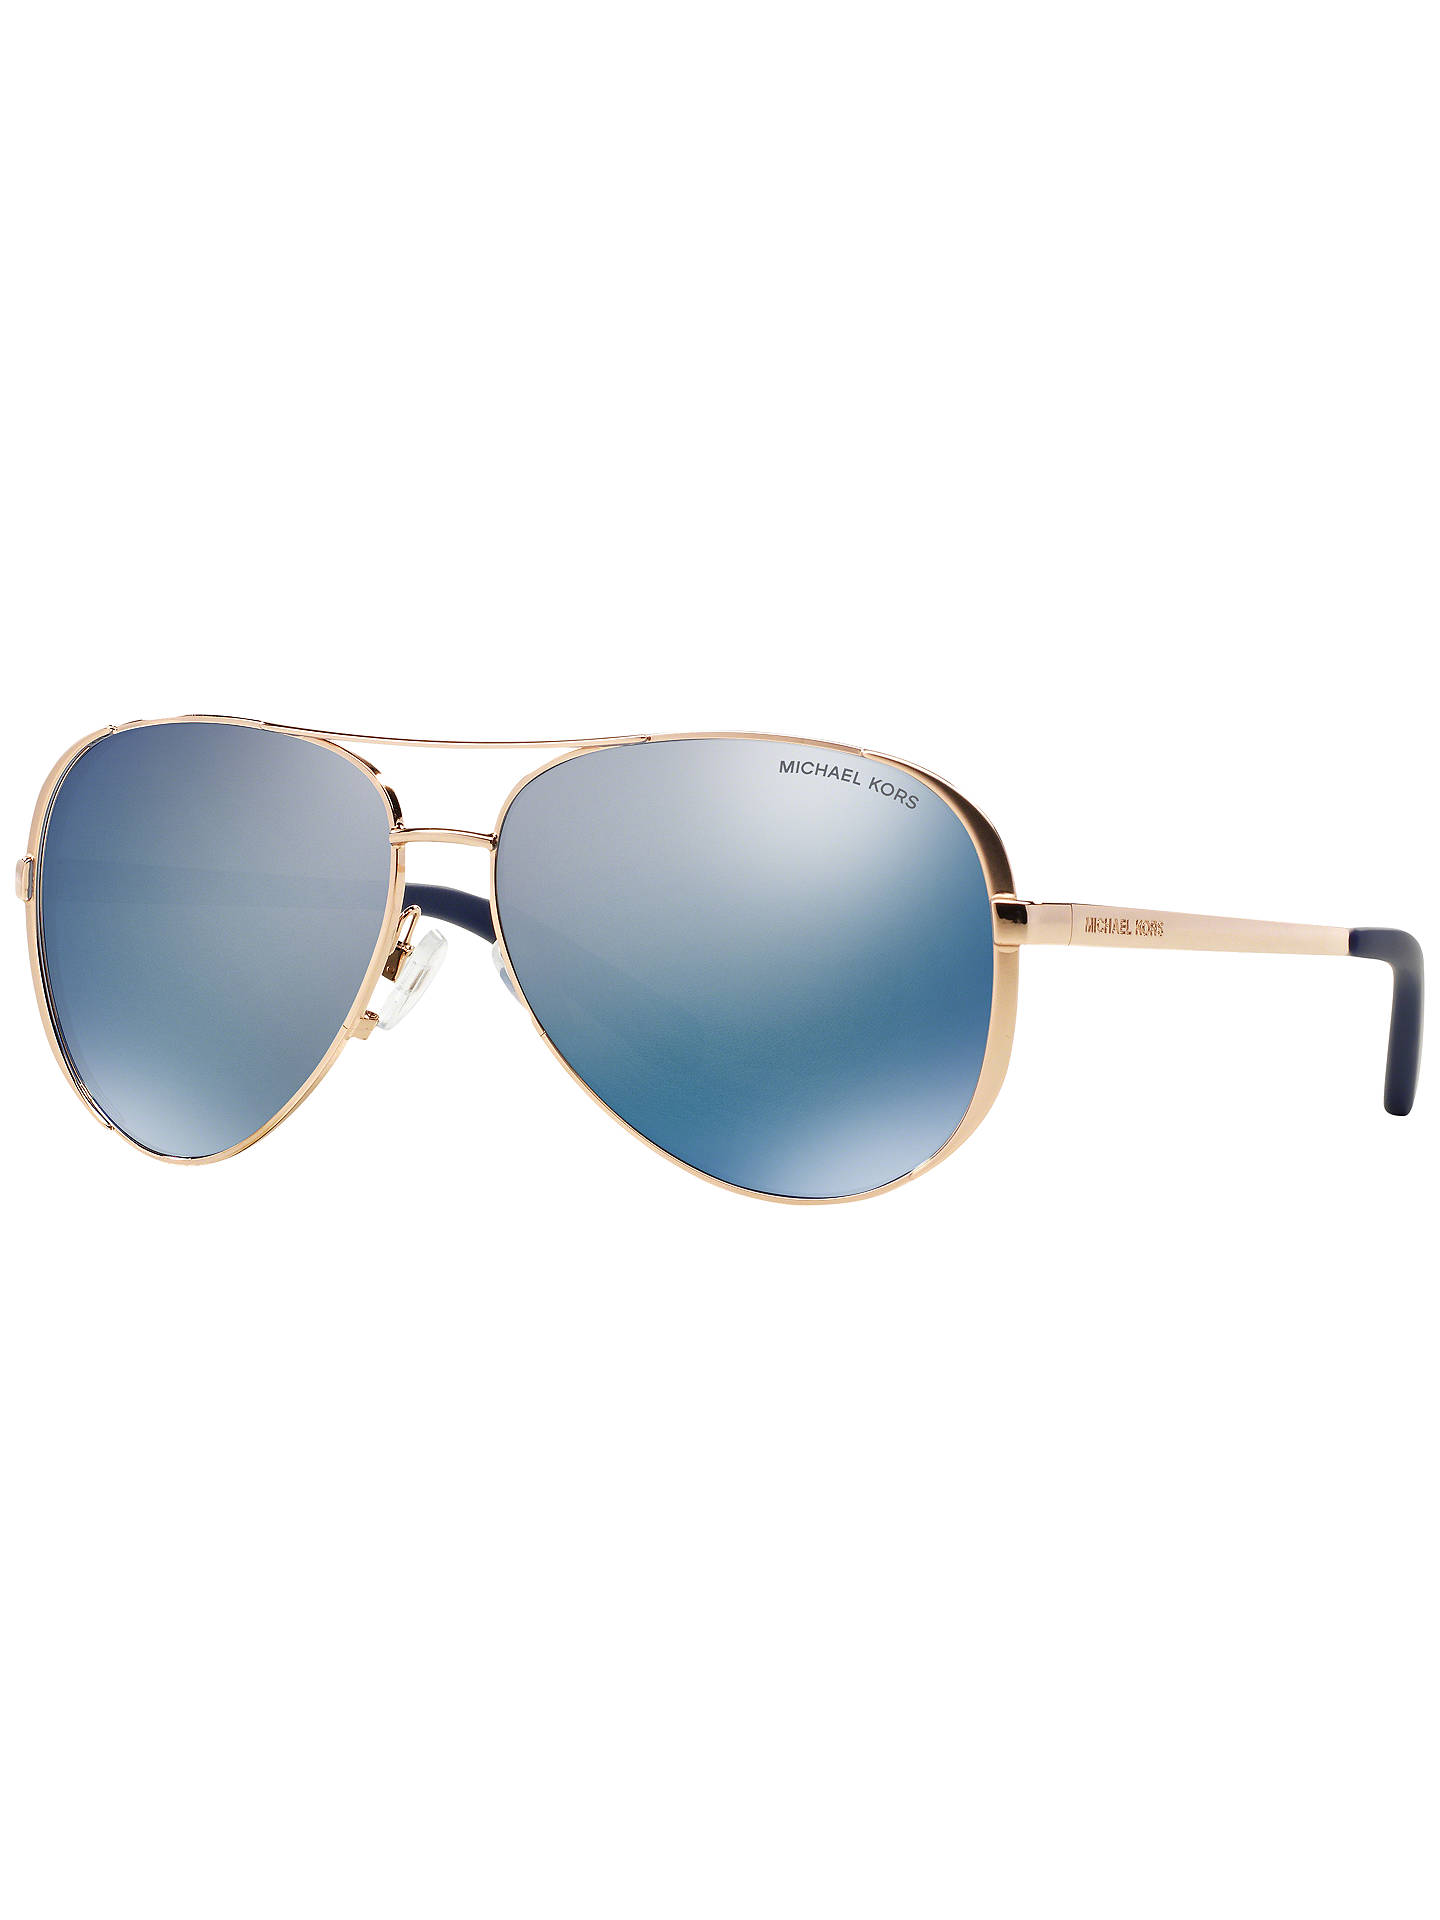 206c74db0924a Michael Kors MK5004 Chelsea Polarised Aviator Sunglasses at John ...